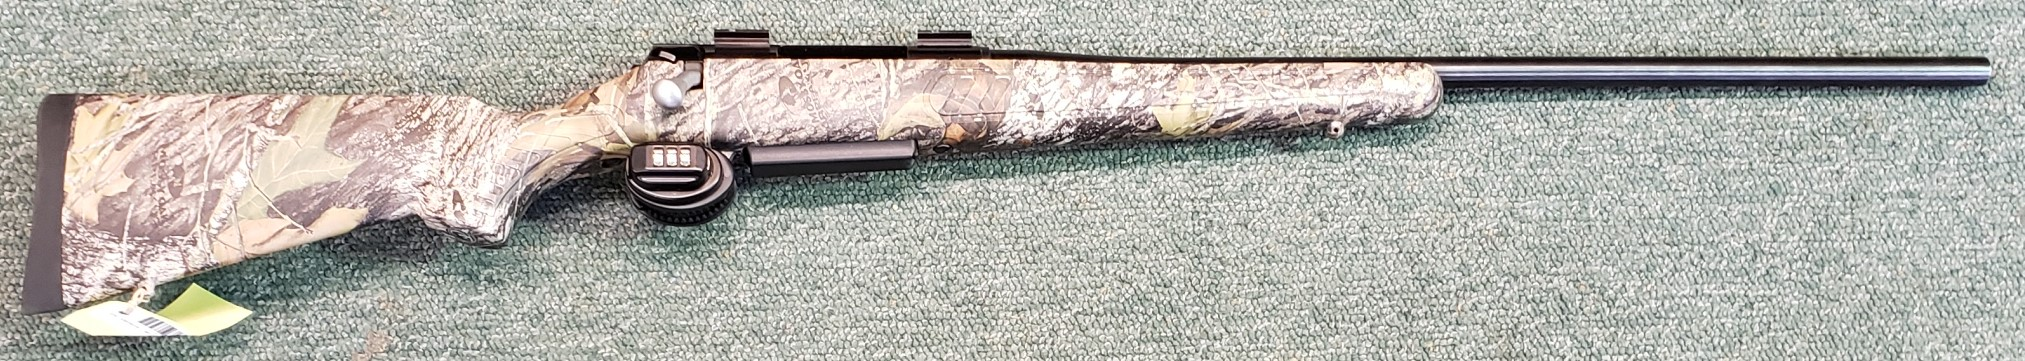 TC Venture Camo .300 win mag. (used)